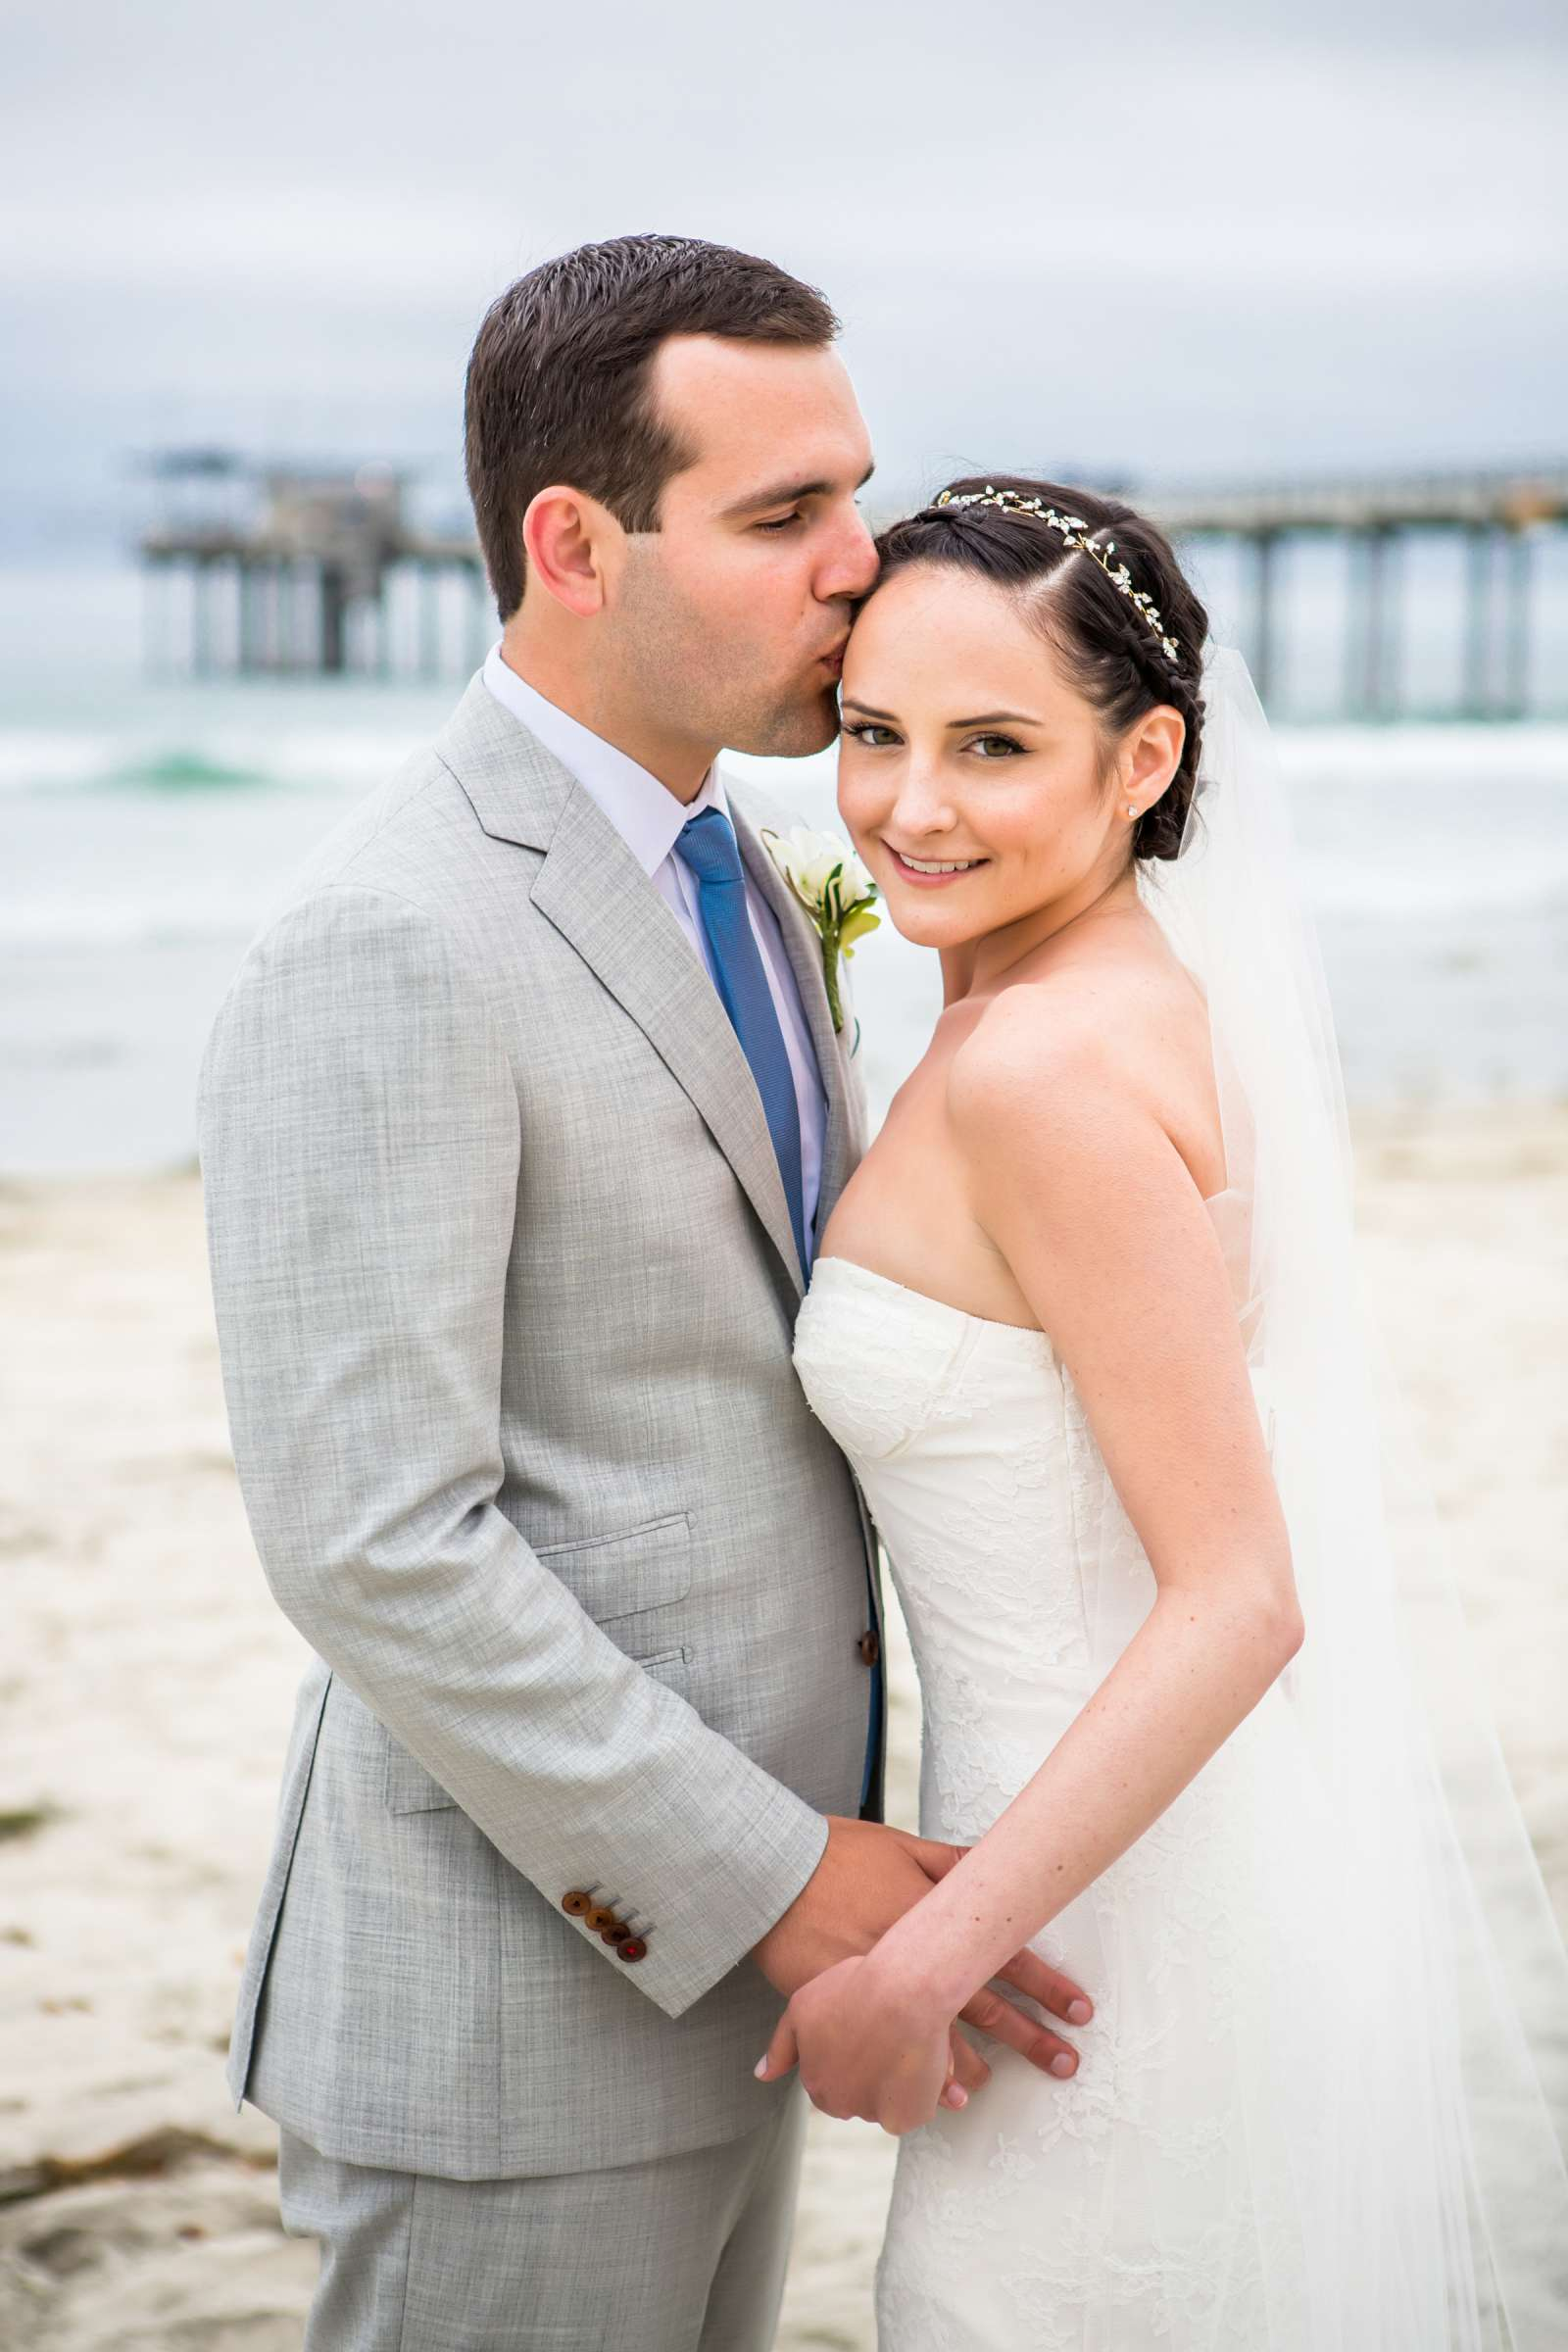 Scripps Seaside Forum Wedding coordinated by Francine Ribeau Events, Shaina and Christopher Wedding Photo #34 by True Photography